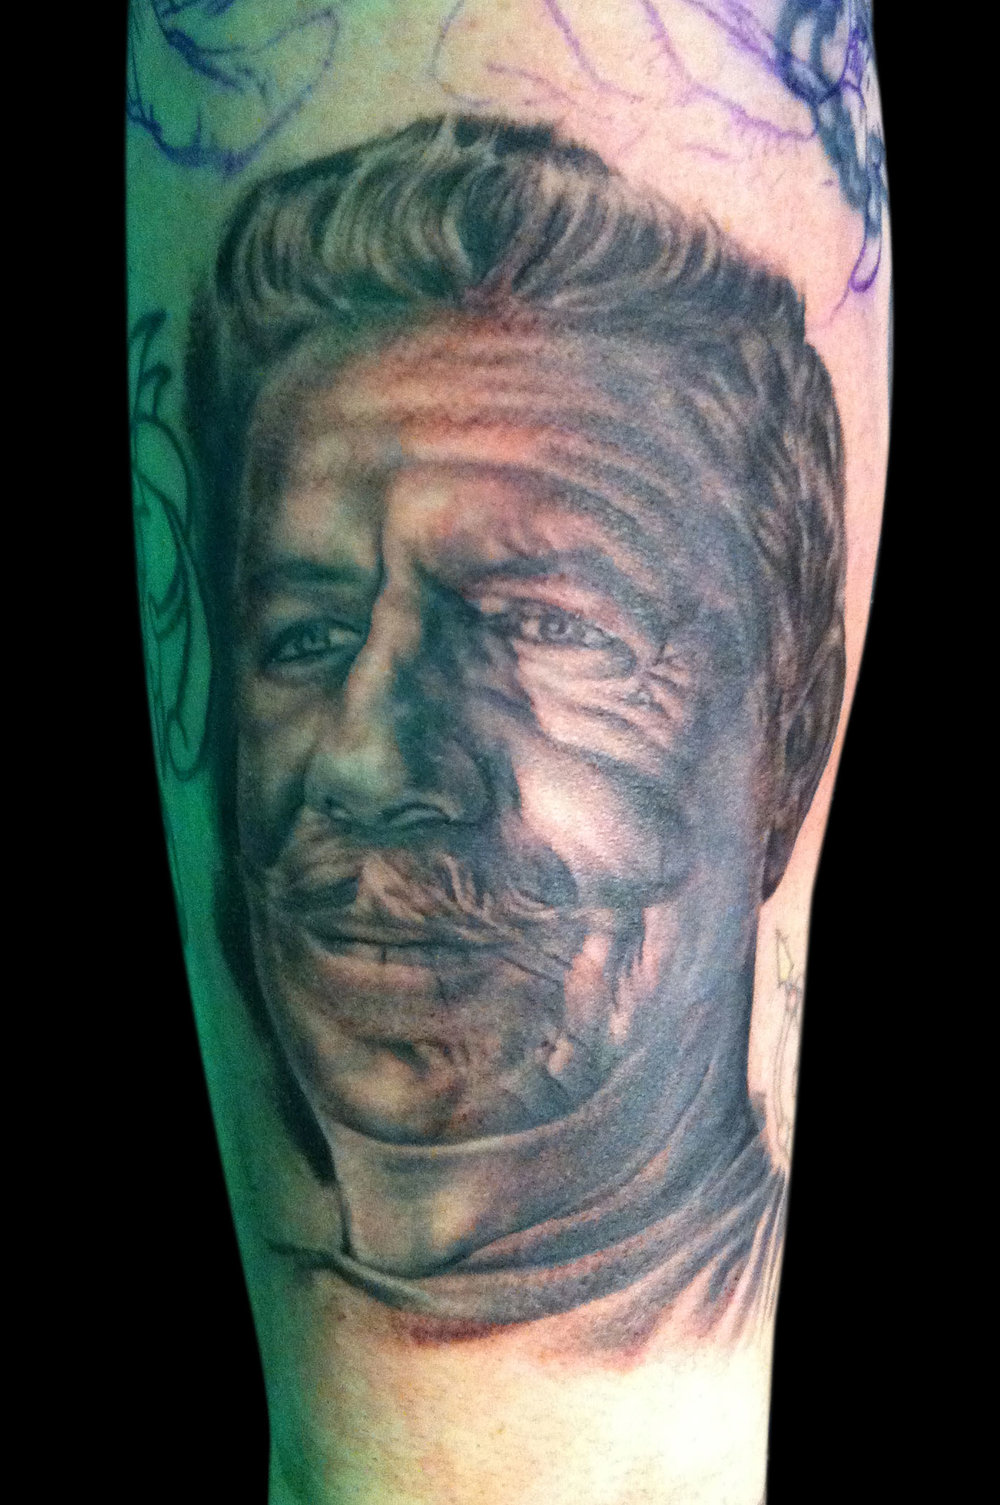 Black and Grey Norman 'Sailor Jerry' Collins Portrait Tattoo, Scottish Tattoo Convention, Edinburgh  Scotland, UK